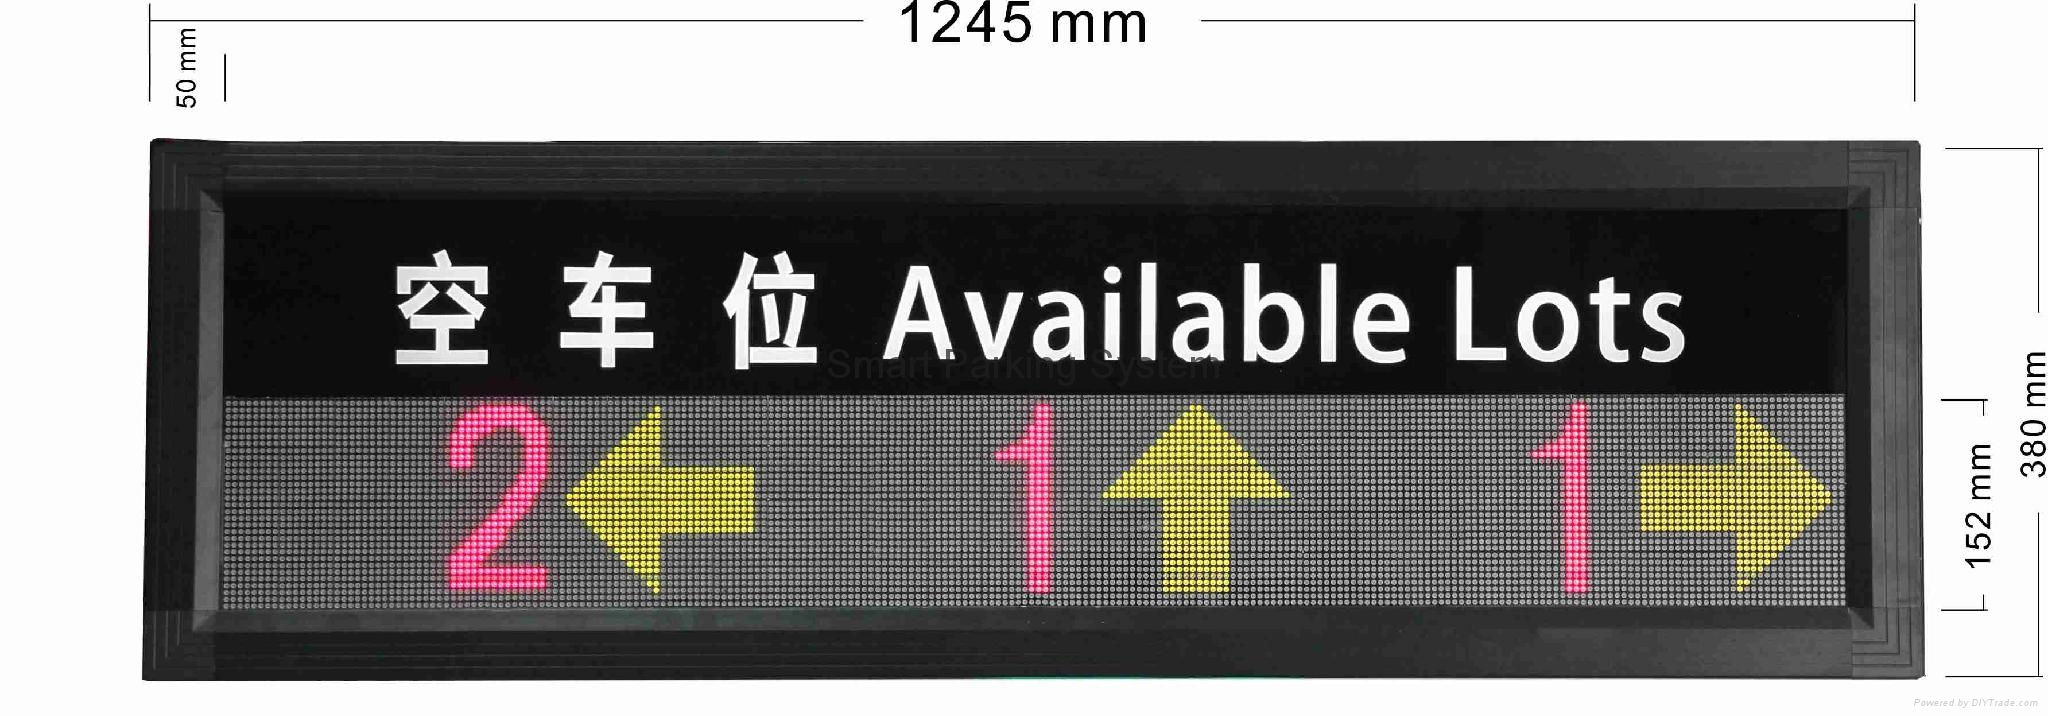 Available Lots Information Real-time Indoor Parking Guiding Led Display 3